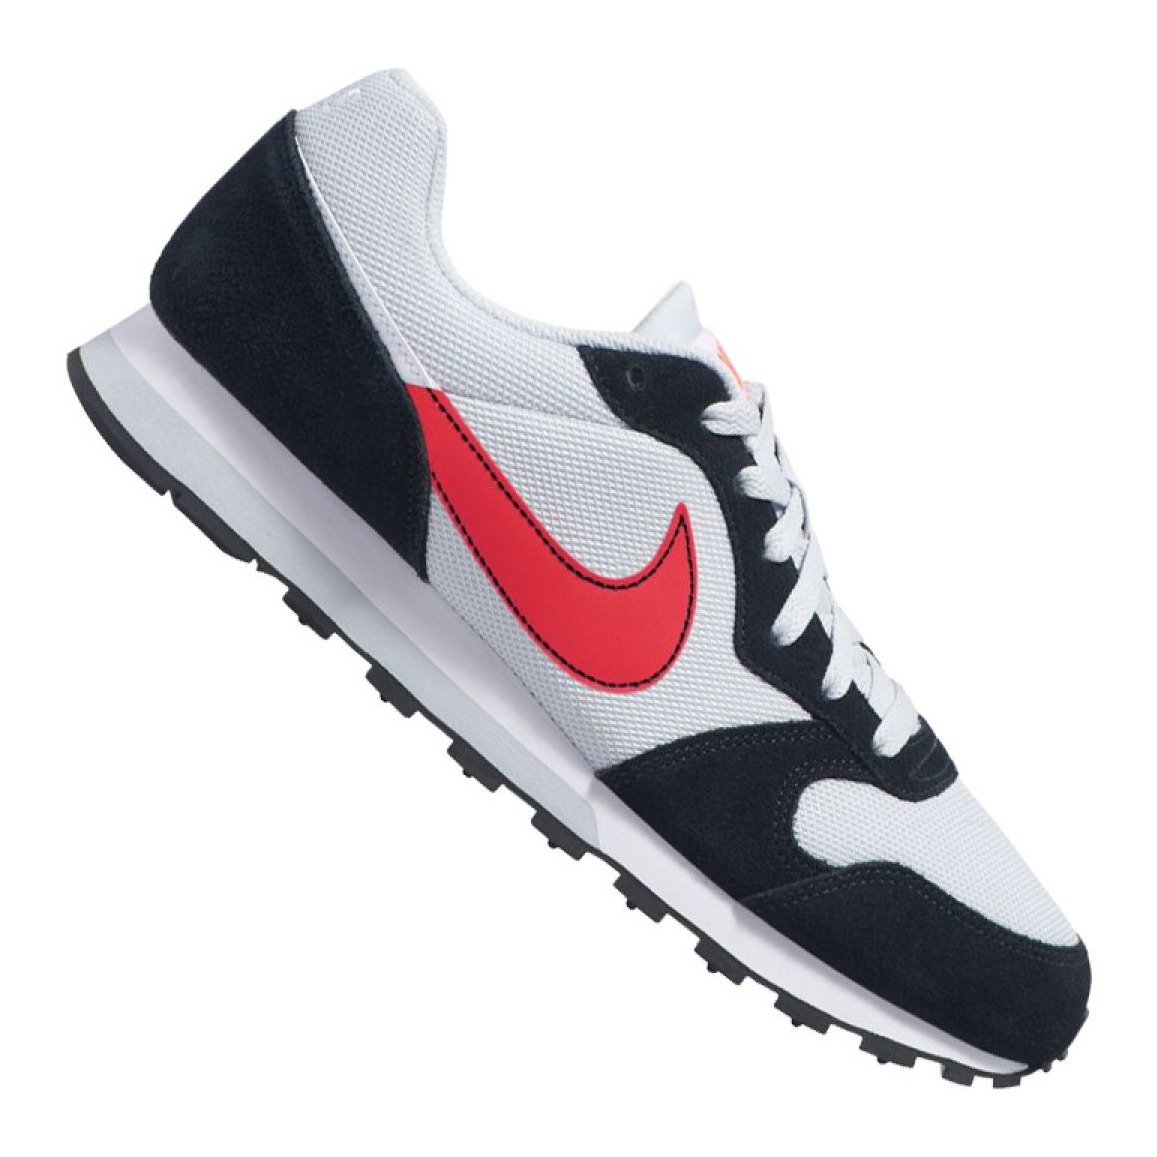 Details about Nike Md Runner 2 ES1 M CI2232 001 shoes